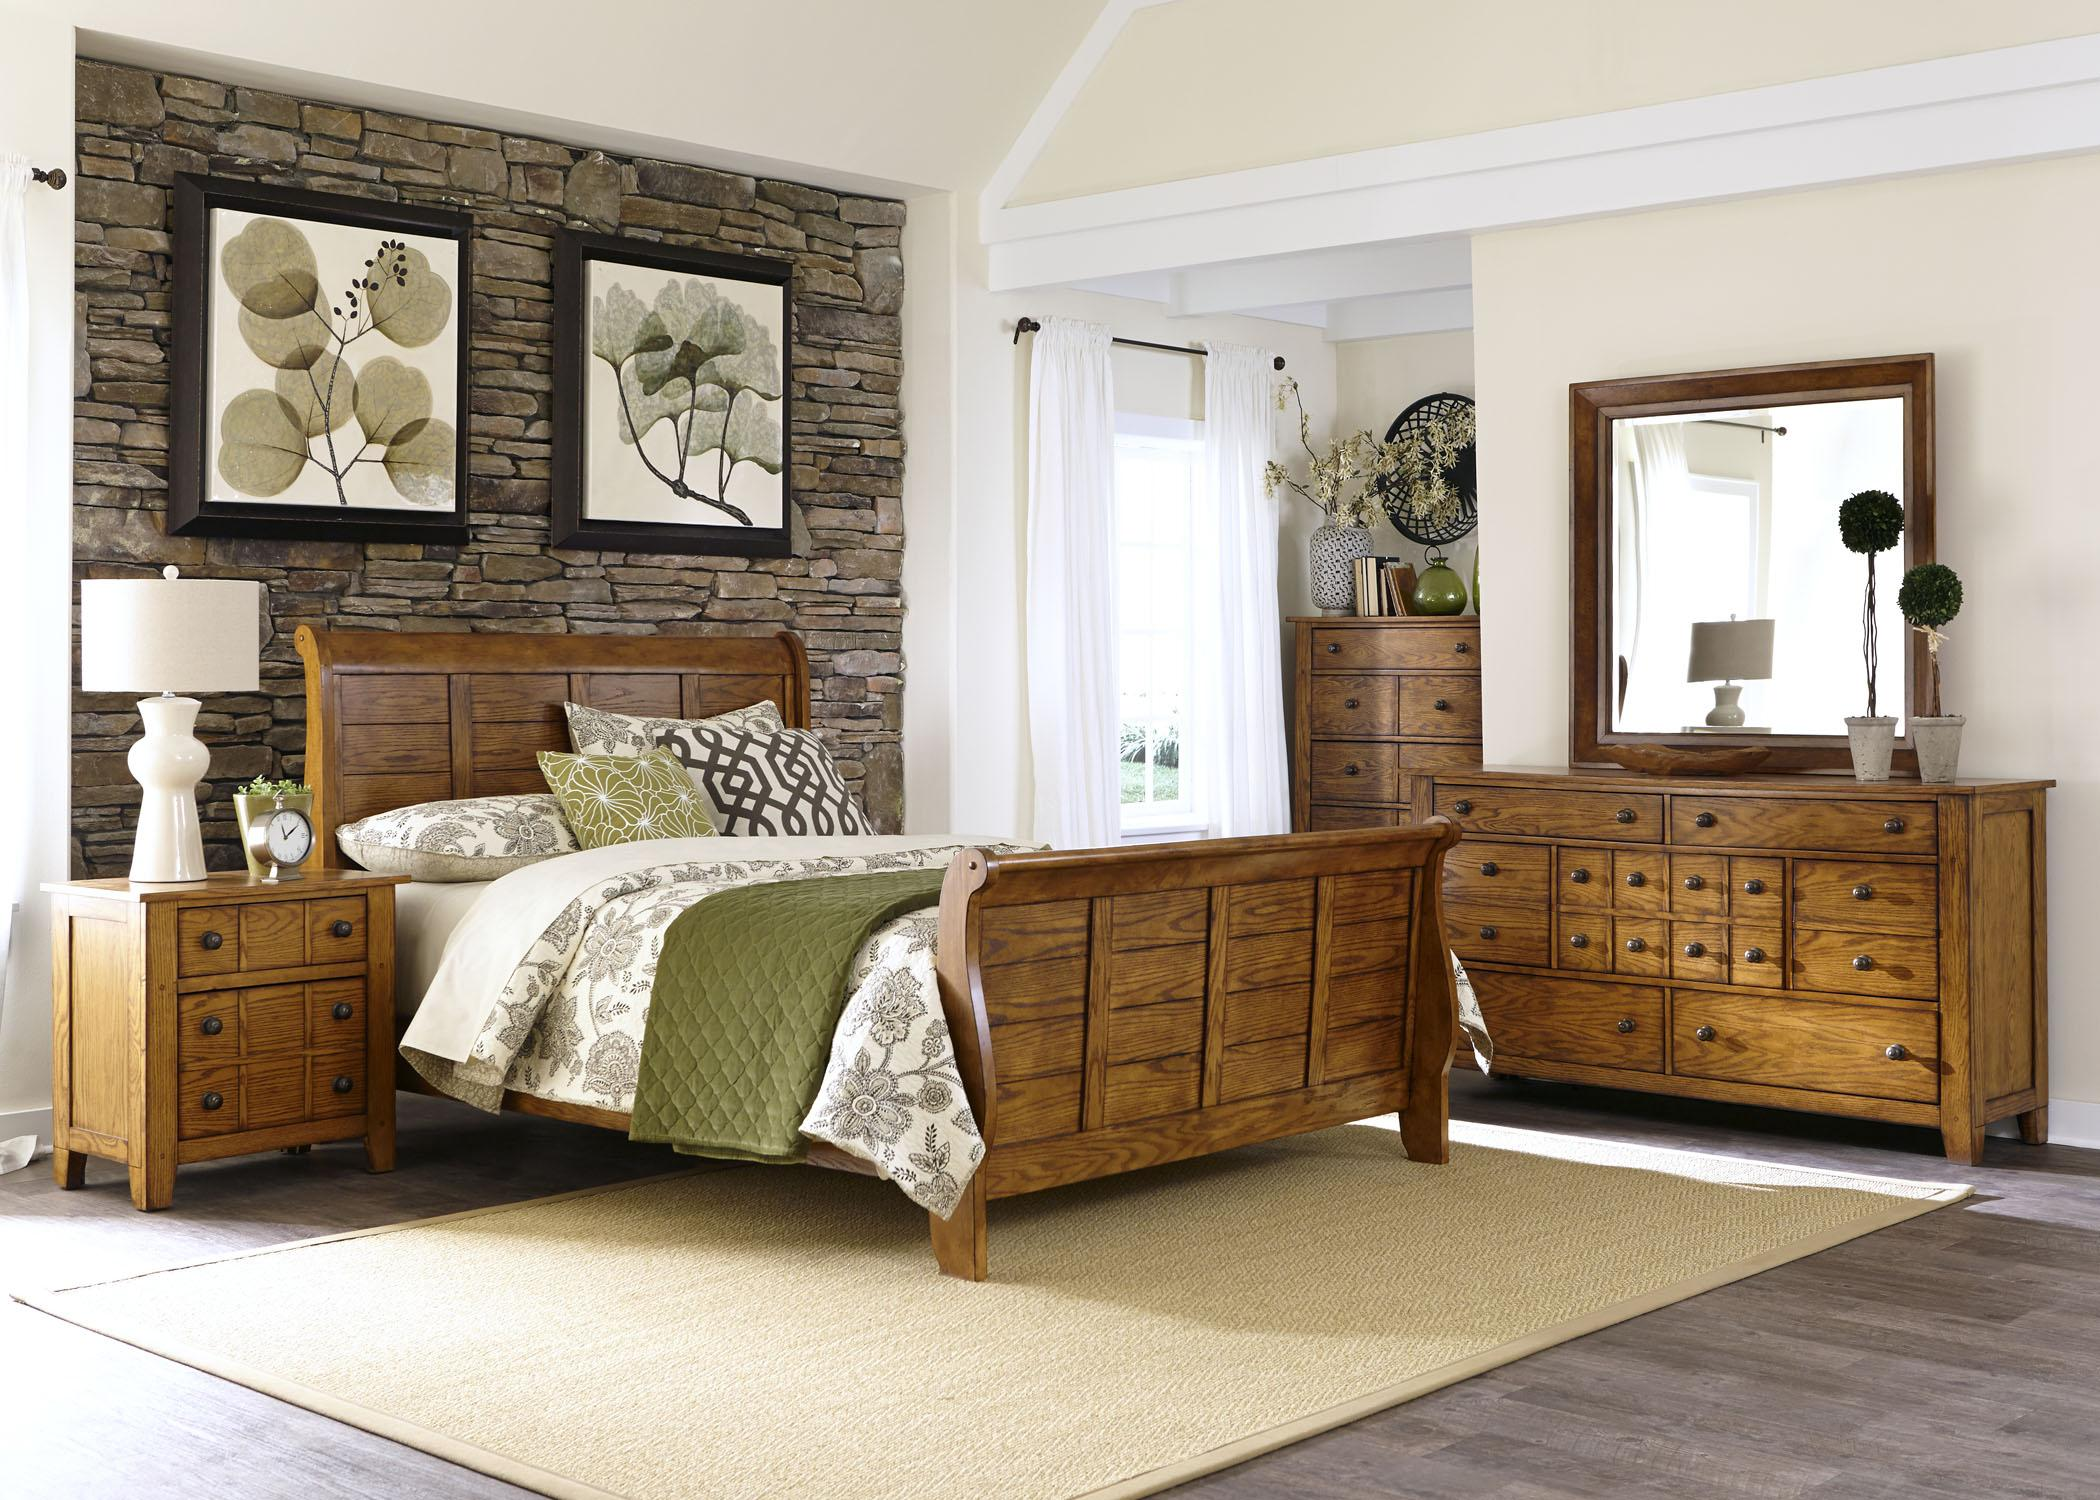 Liberty Furniture Grandpa's Cabin King Bedroom Group - Item Number: 175 K Bedroom Group 1